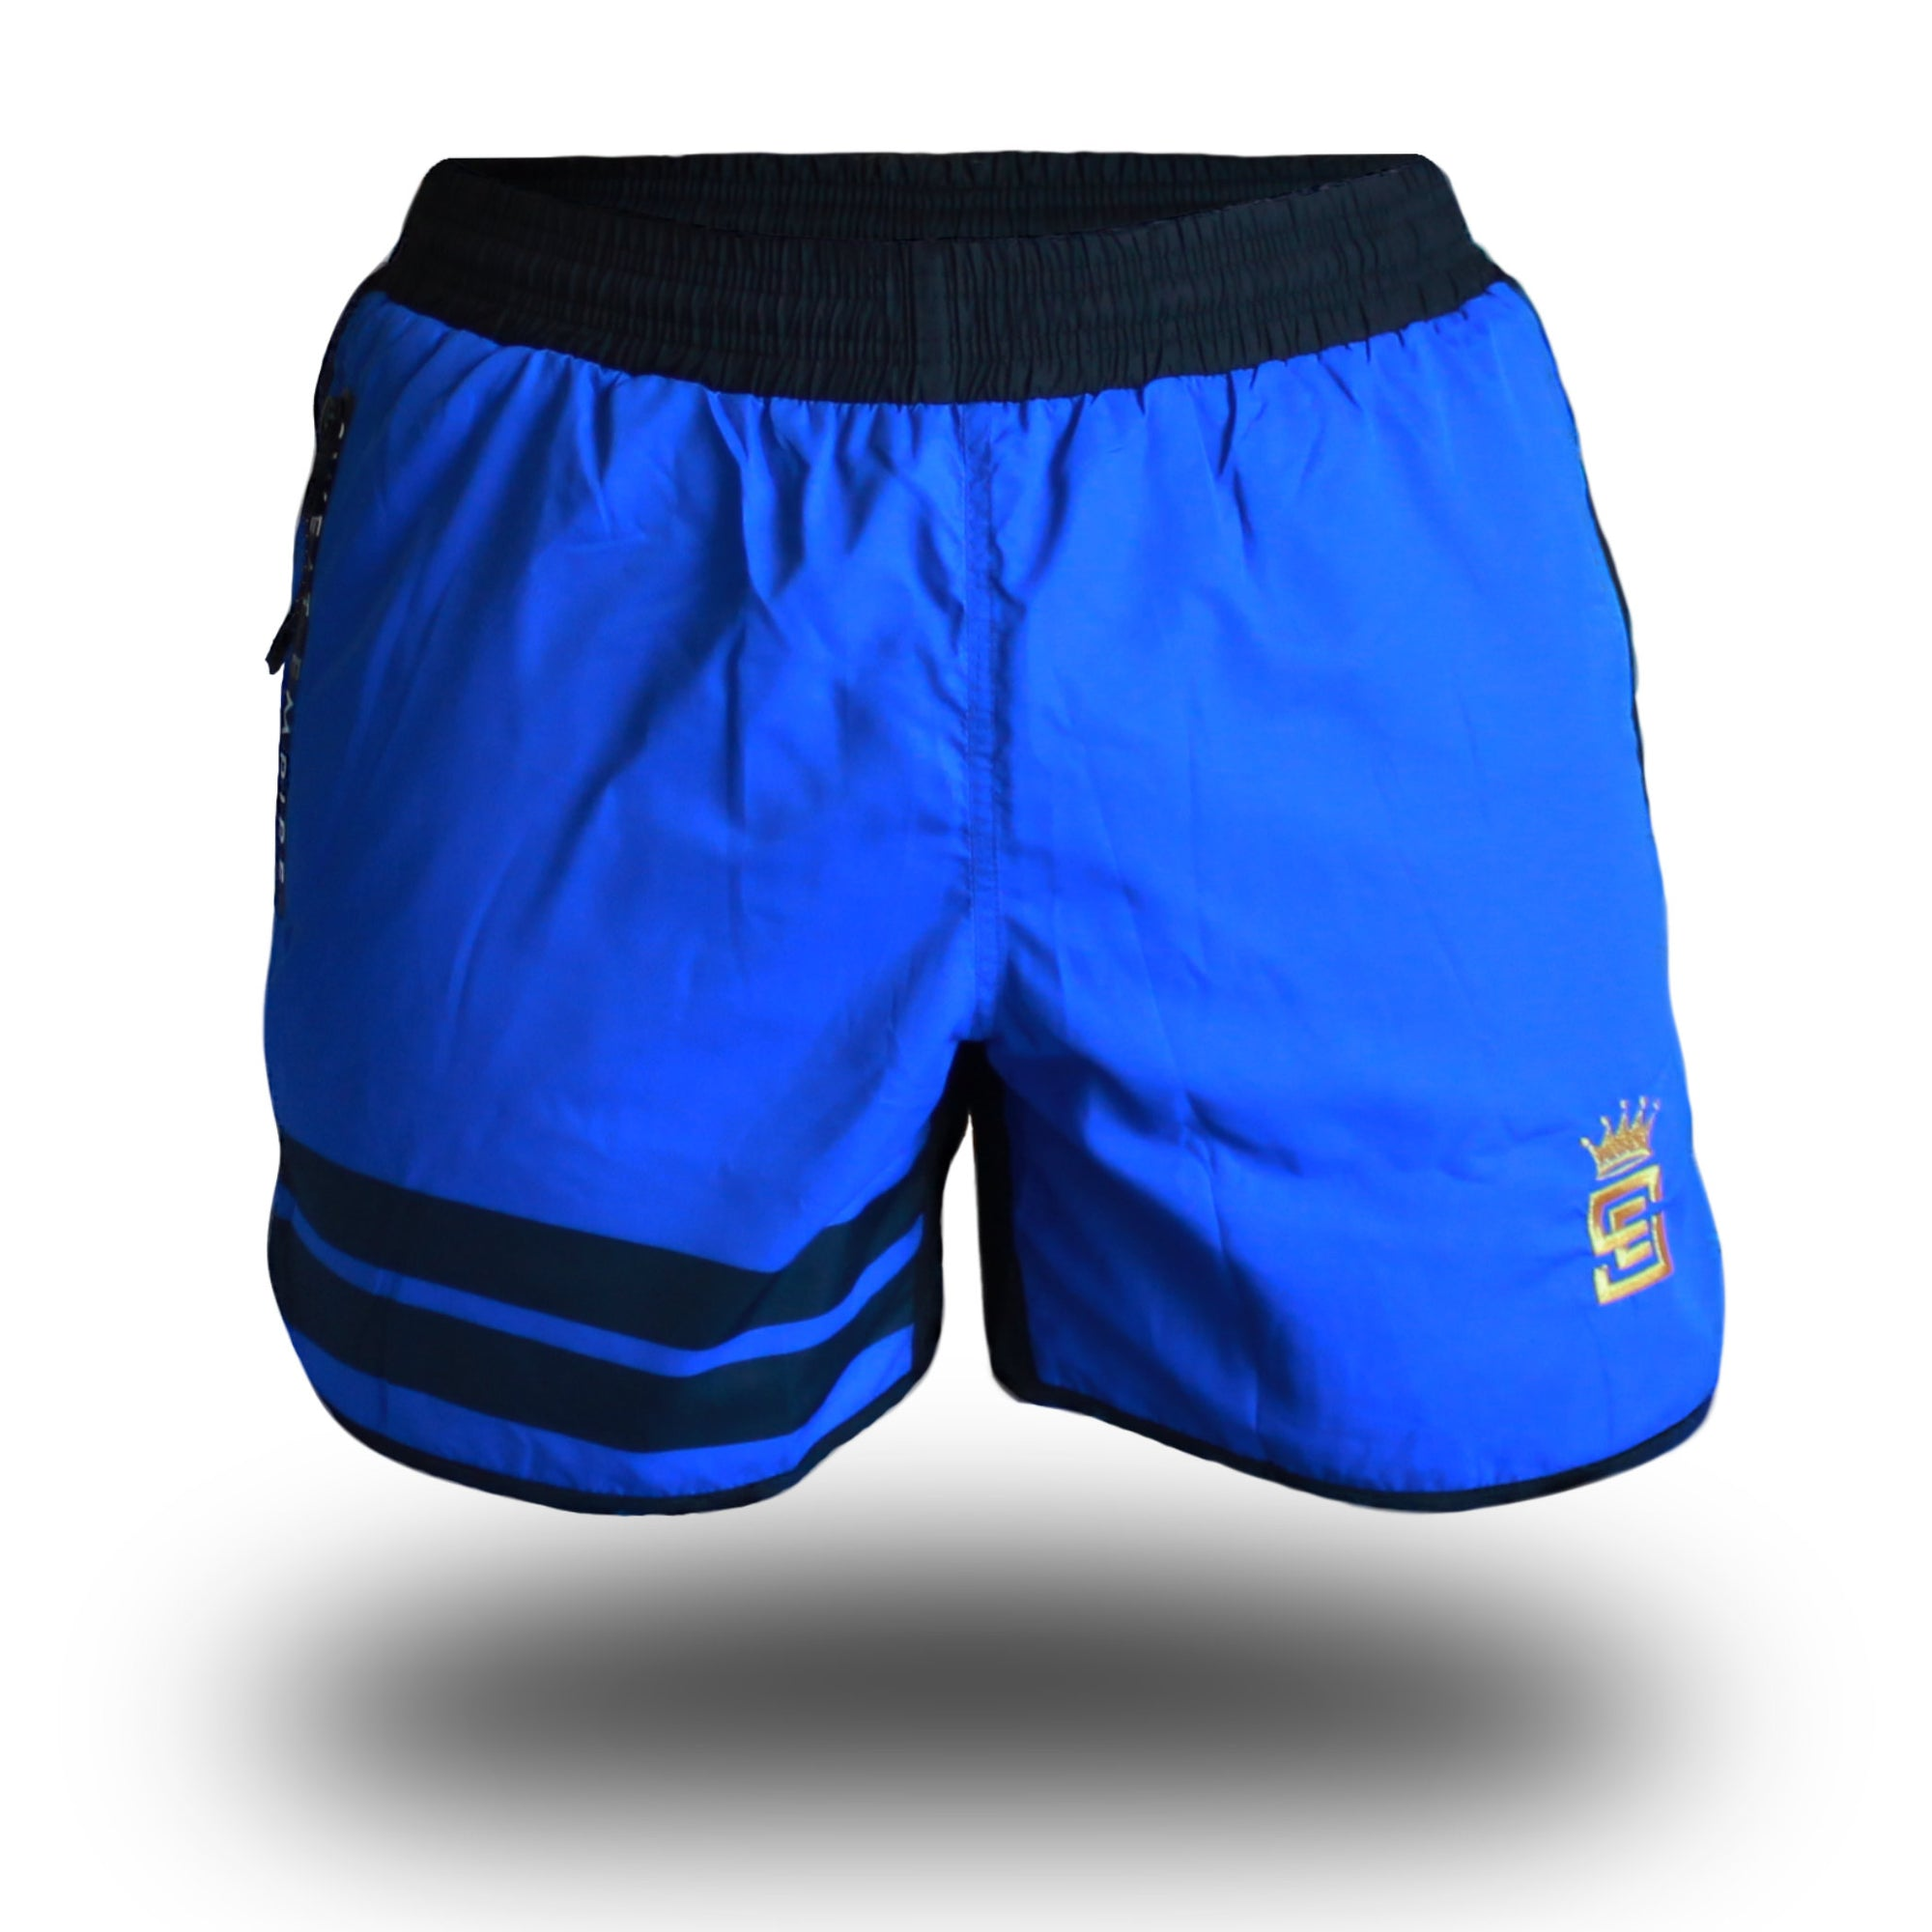 mens get shorty shorts blue/black front